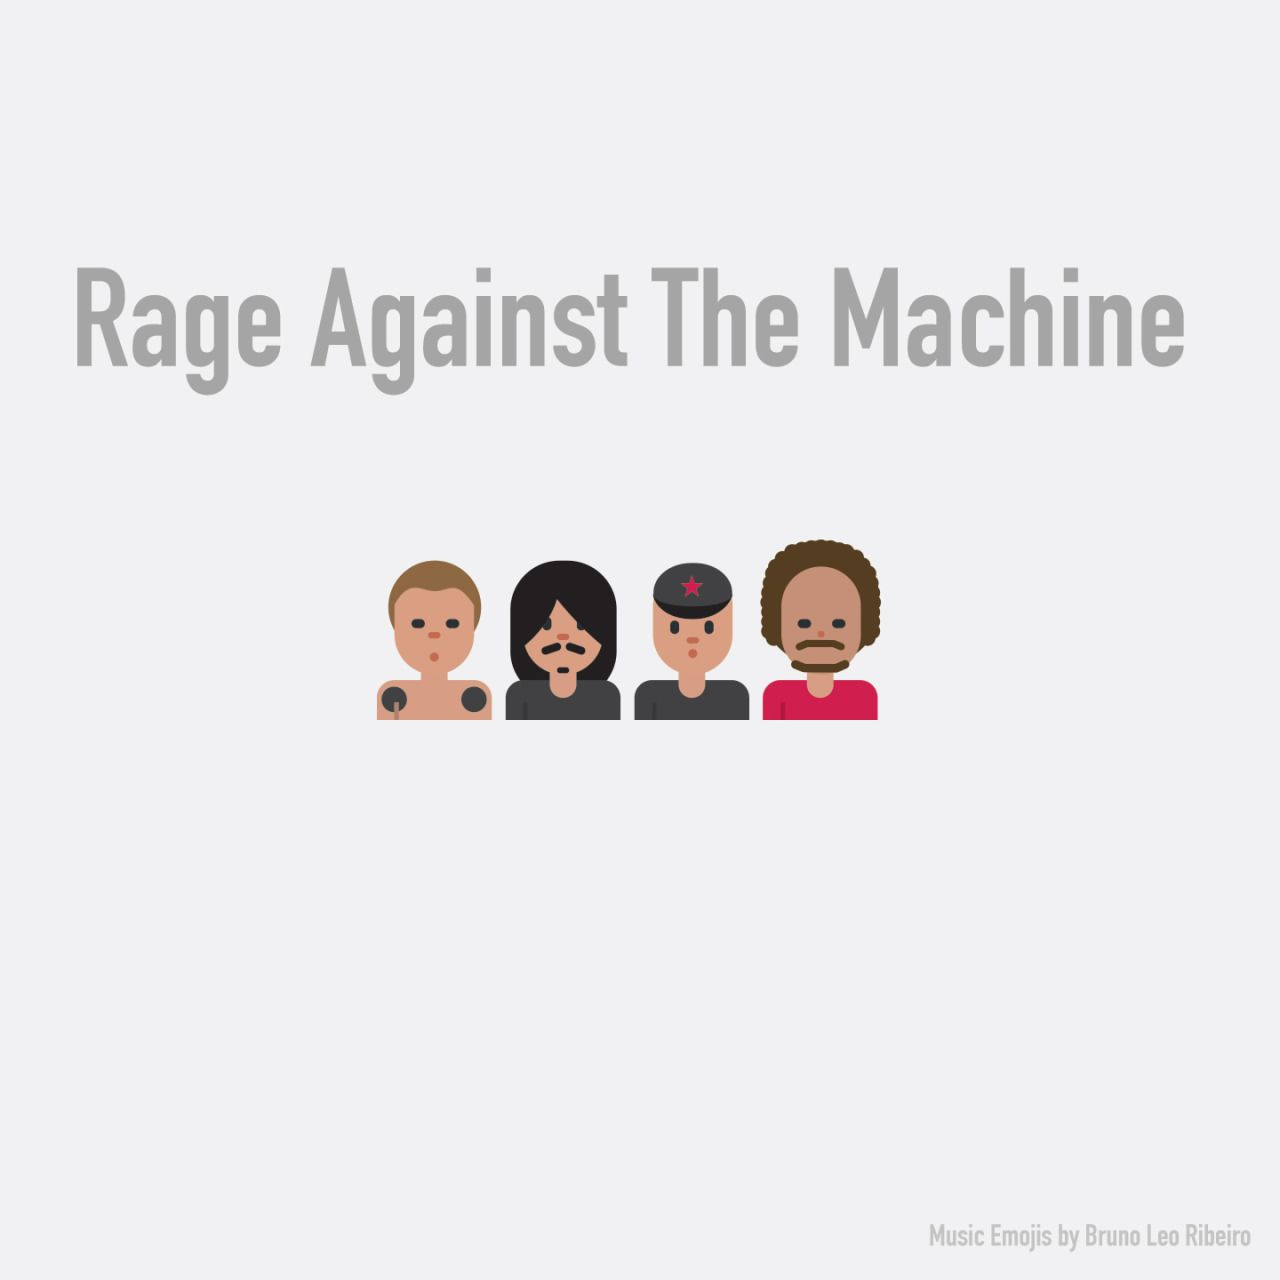 Music Emojis Famous Musicians Emoji Rage Against The Machine